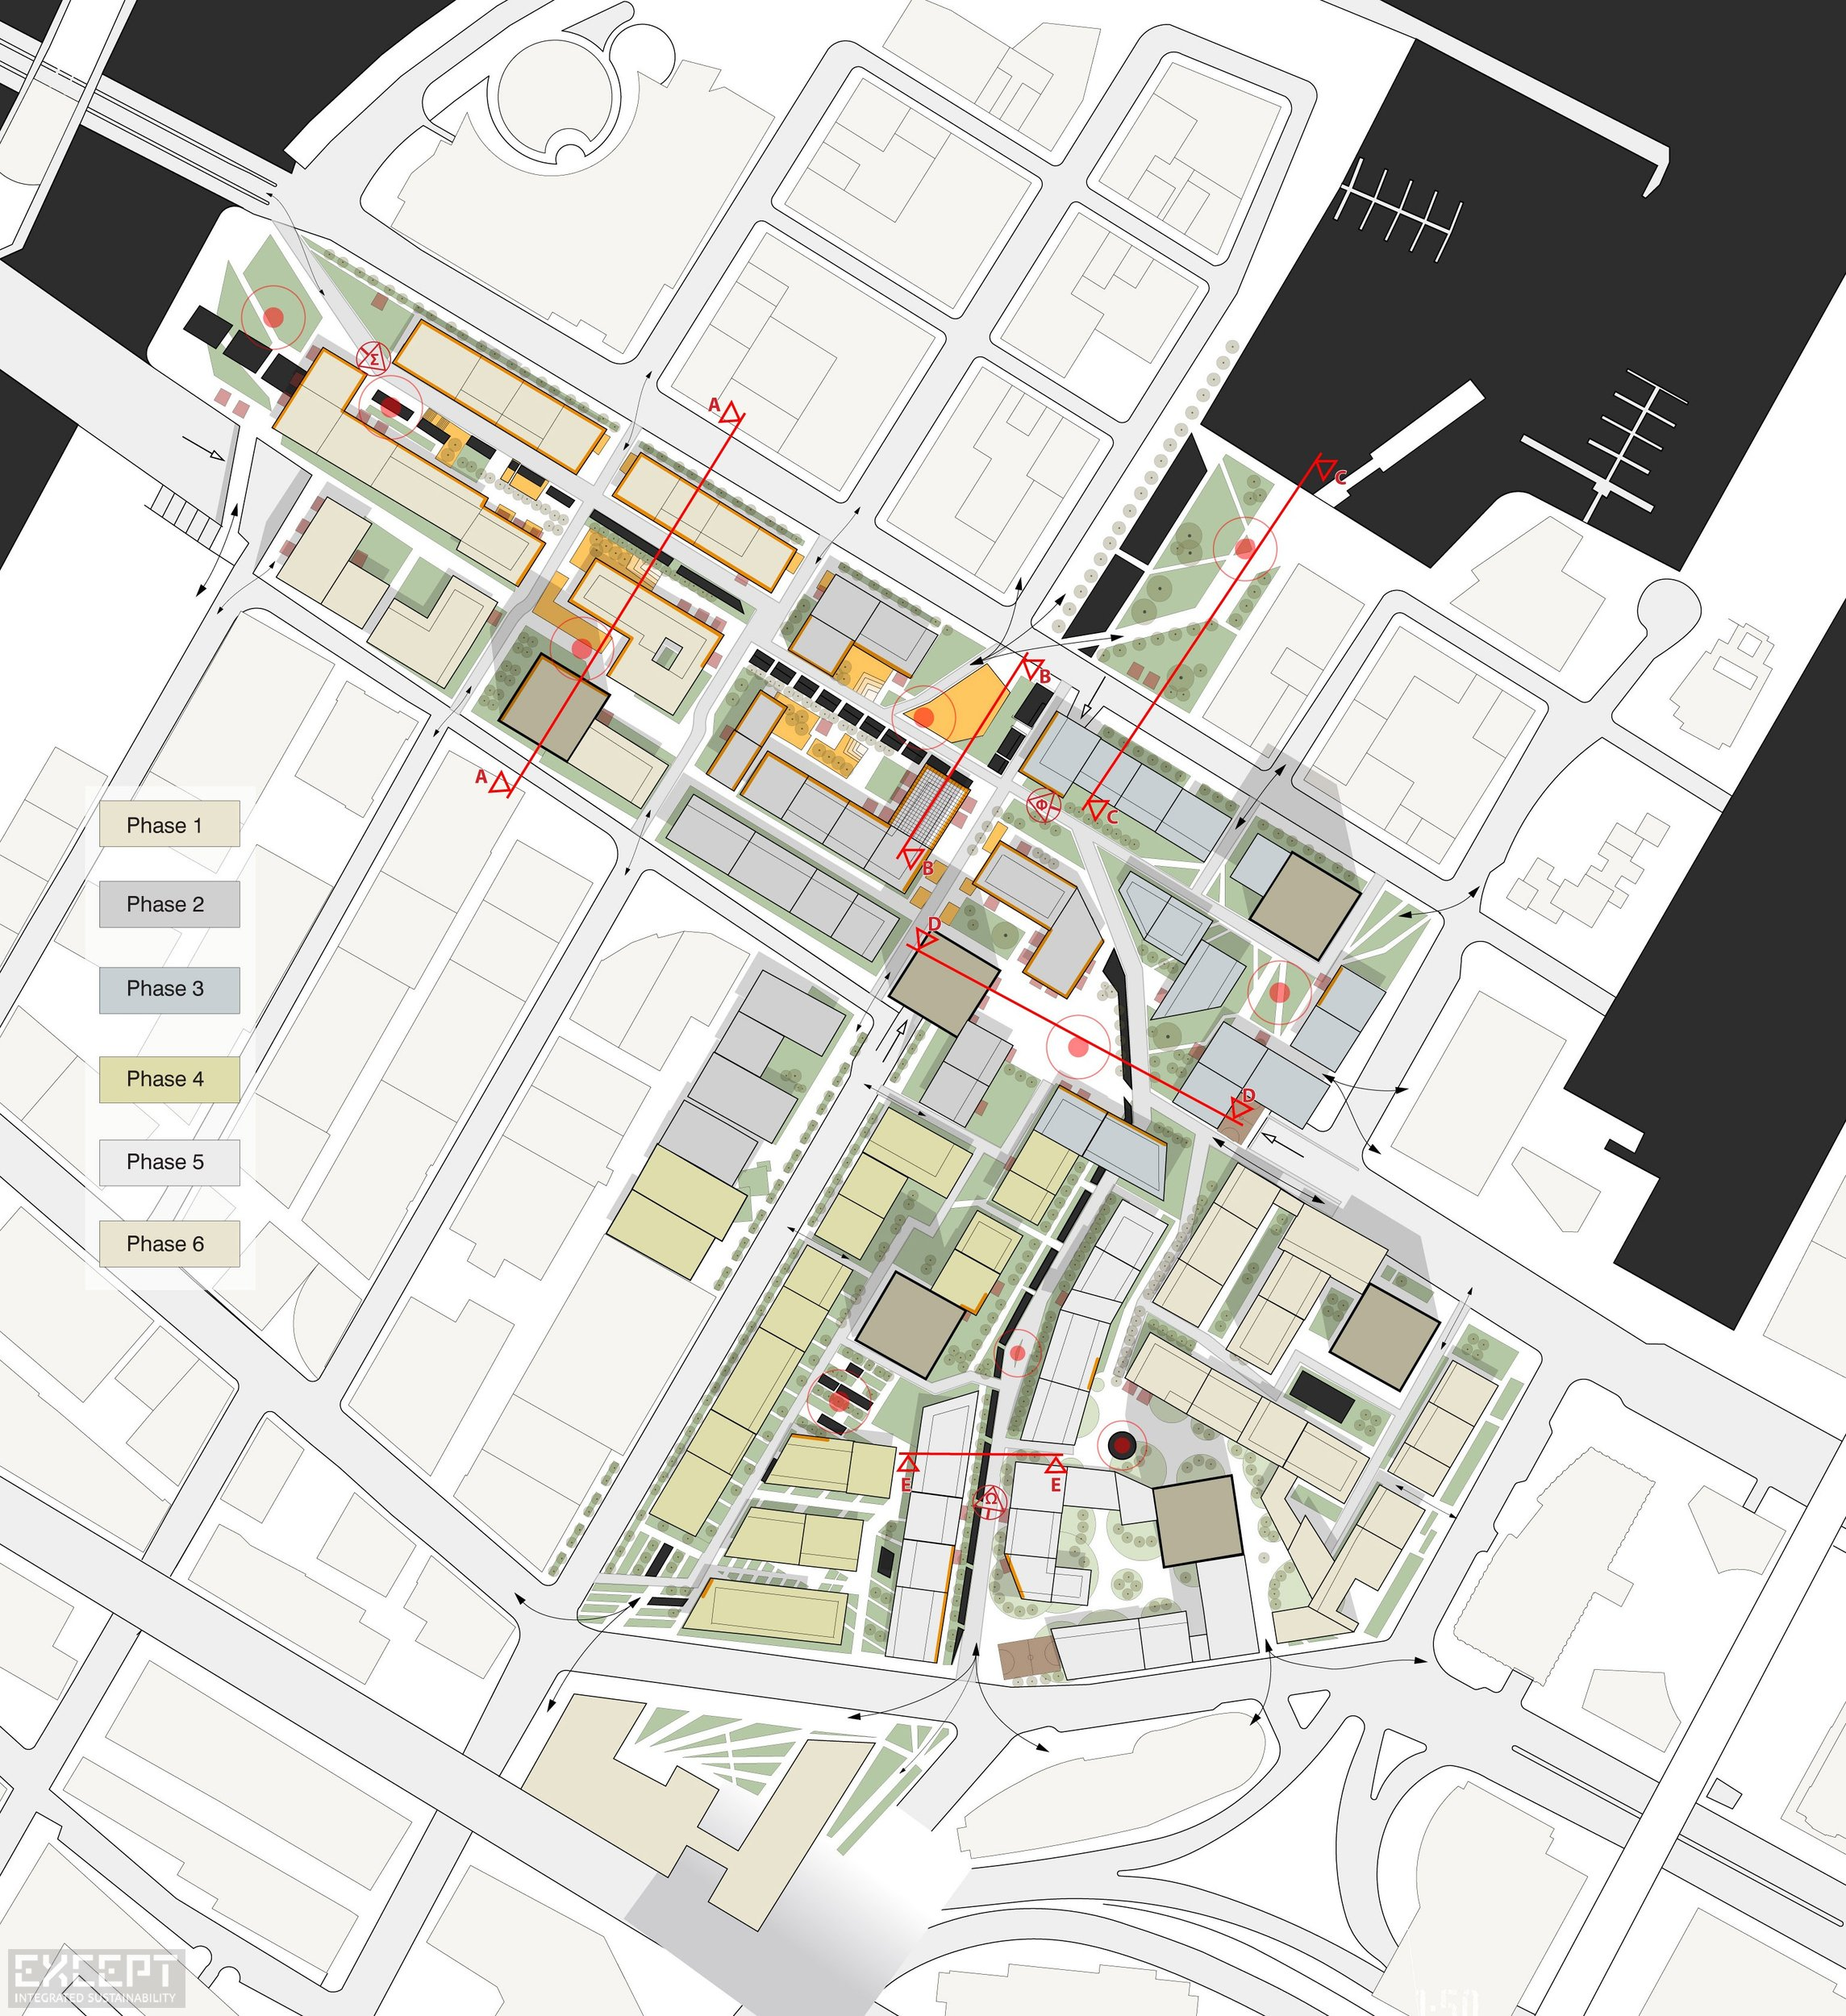 Site Plan - The site plan of the urban design